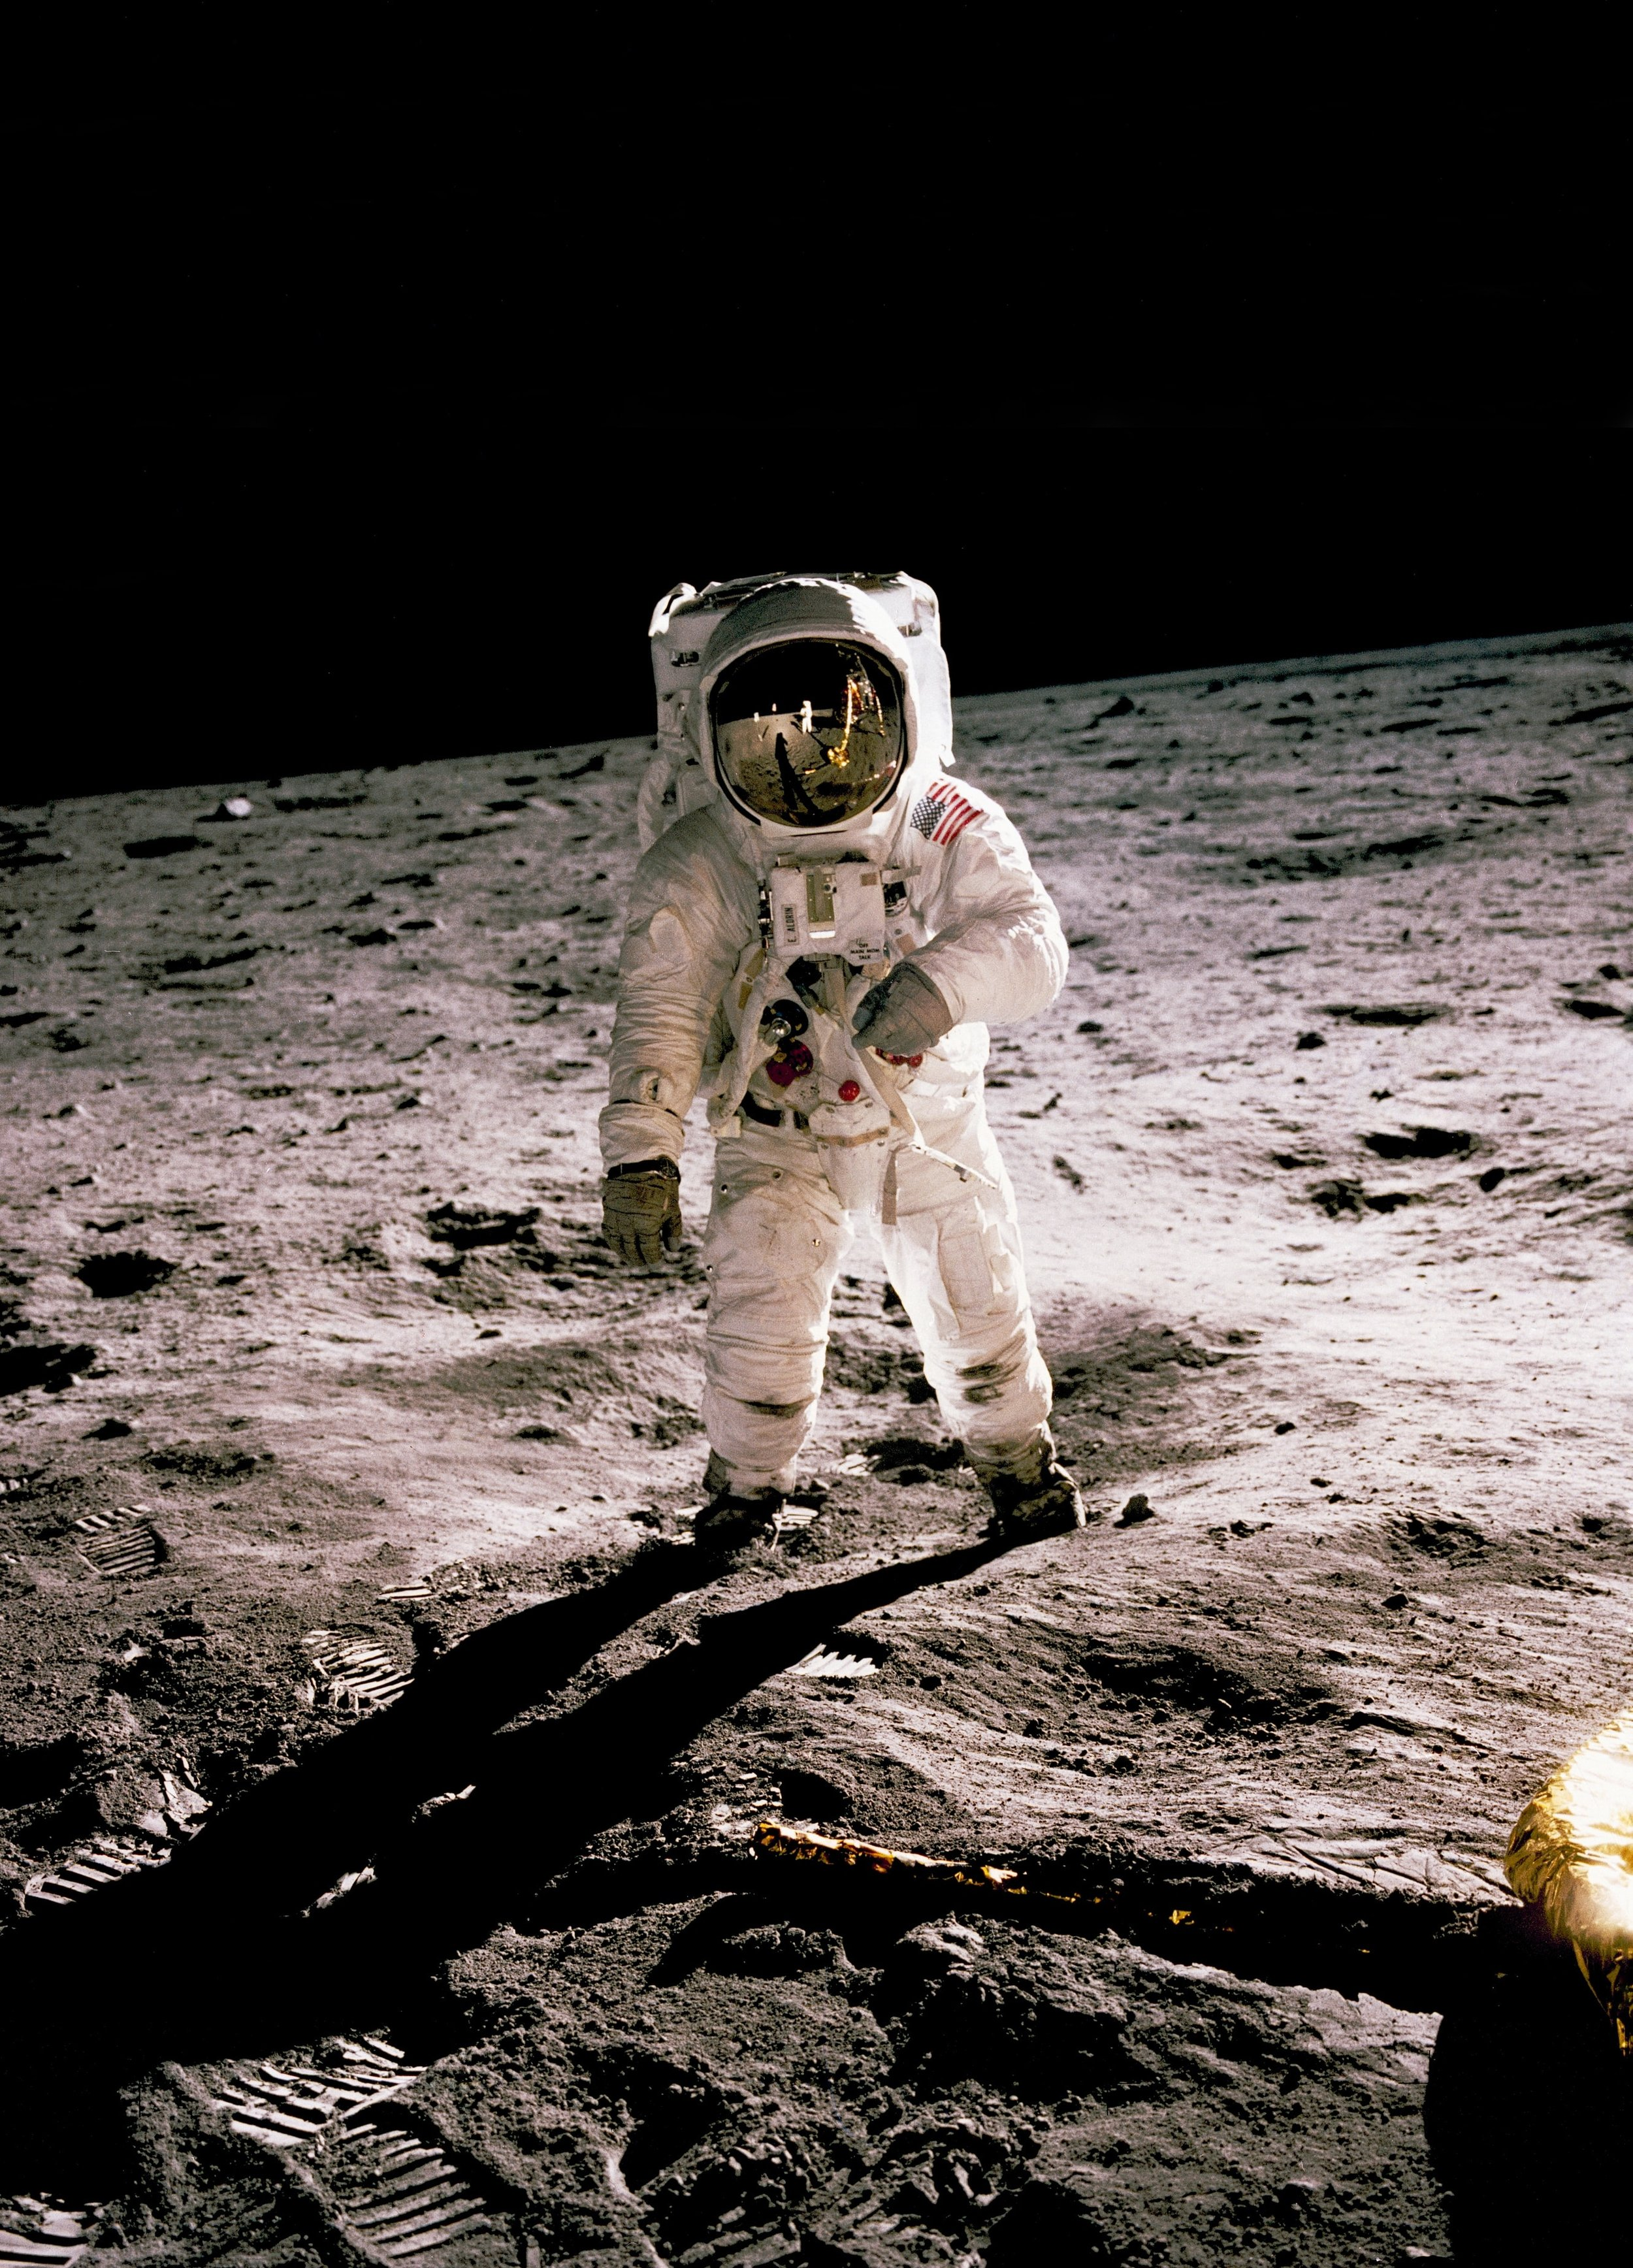 """- On a warm July night, 50 years ago this week, people huddled around their black-and-white televisions, moving the rabbit ear antennae in different directions to watch the first human step down onto the moon. The step achieved the vision and challenge set forth by U.S. President John F. Kennedy (JFK) in 1961. It wasn't made by one man, but by thousands. From engineers to human computers to seamstress to physicists. And a janitor. That's right, a janitor helped put man on the moon.In 1962, JFK was visiting the NASA space center. During his visit, he noticed a janitor carrying a broom. He walked over to him and said """"Hi, I'm Jack Kennedy. What are you doing?"""" The janitor responded, """"Well Mr. President, I'm helping put a man on the moon.""""In that one sentence, the man connected his work to the main purpose of all NASA employees. He knew that by providing a clean and safe work environment, he was helping engineers have the physical work space needed to do their calculations. Together, they were all contributing towards putting a man on the moon. Each person had his/her own part to contribute. Recognizing how their individual pieces connected to the vision helped each of them to be engaged and inspired.There are rumblings that this story is urban legend. Offices would be cleaned at night, not during a presidential visit. Great care would be taken to ensure it was spotless. No one knows the Janitor's name. Personally, I don't believe it matters. Whether this conversation took place or not, janitors helped put man on the moon. Each person contributes to overall outcomes and achievements. Magic happens when leaders help each person realize how."""